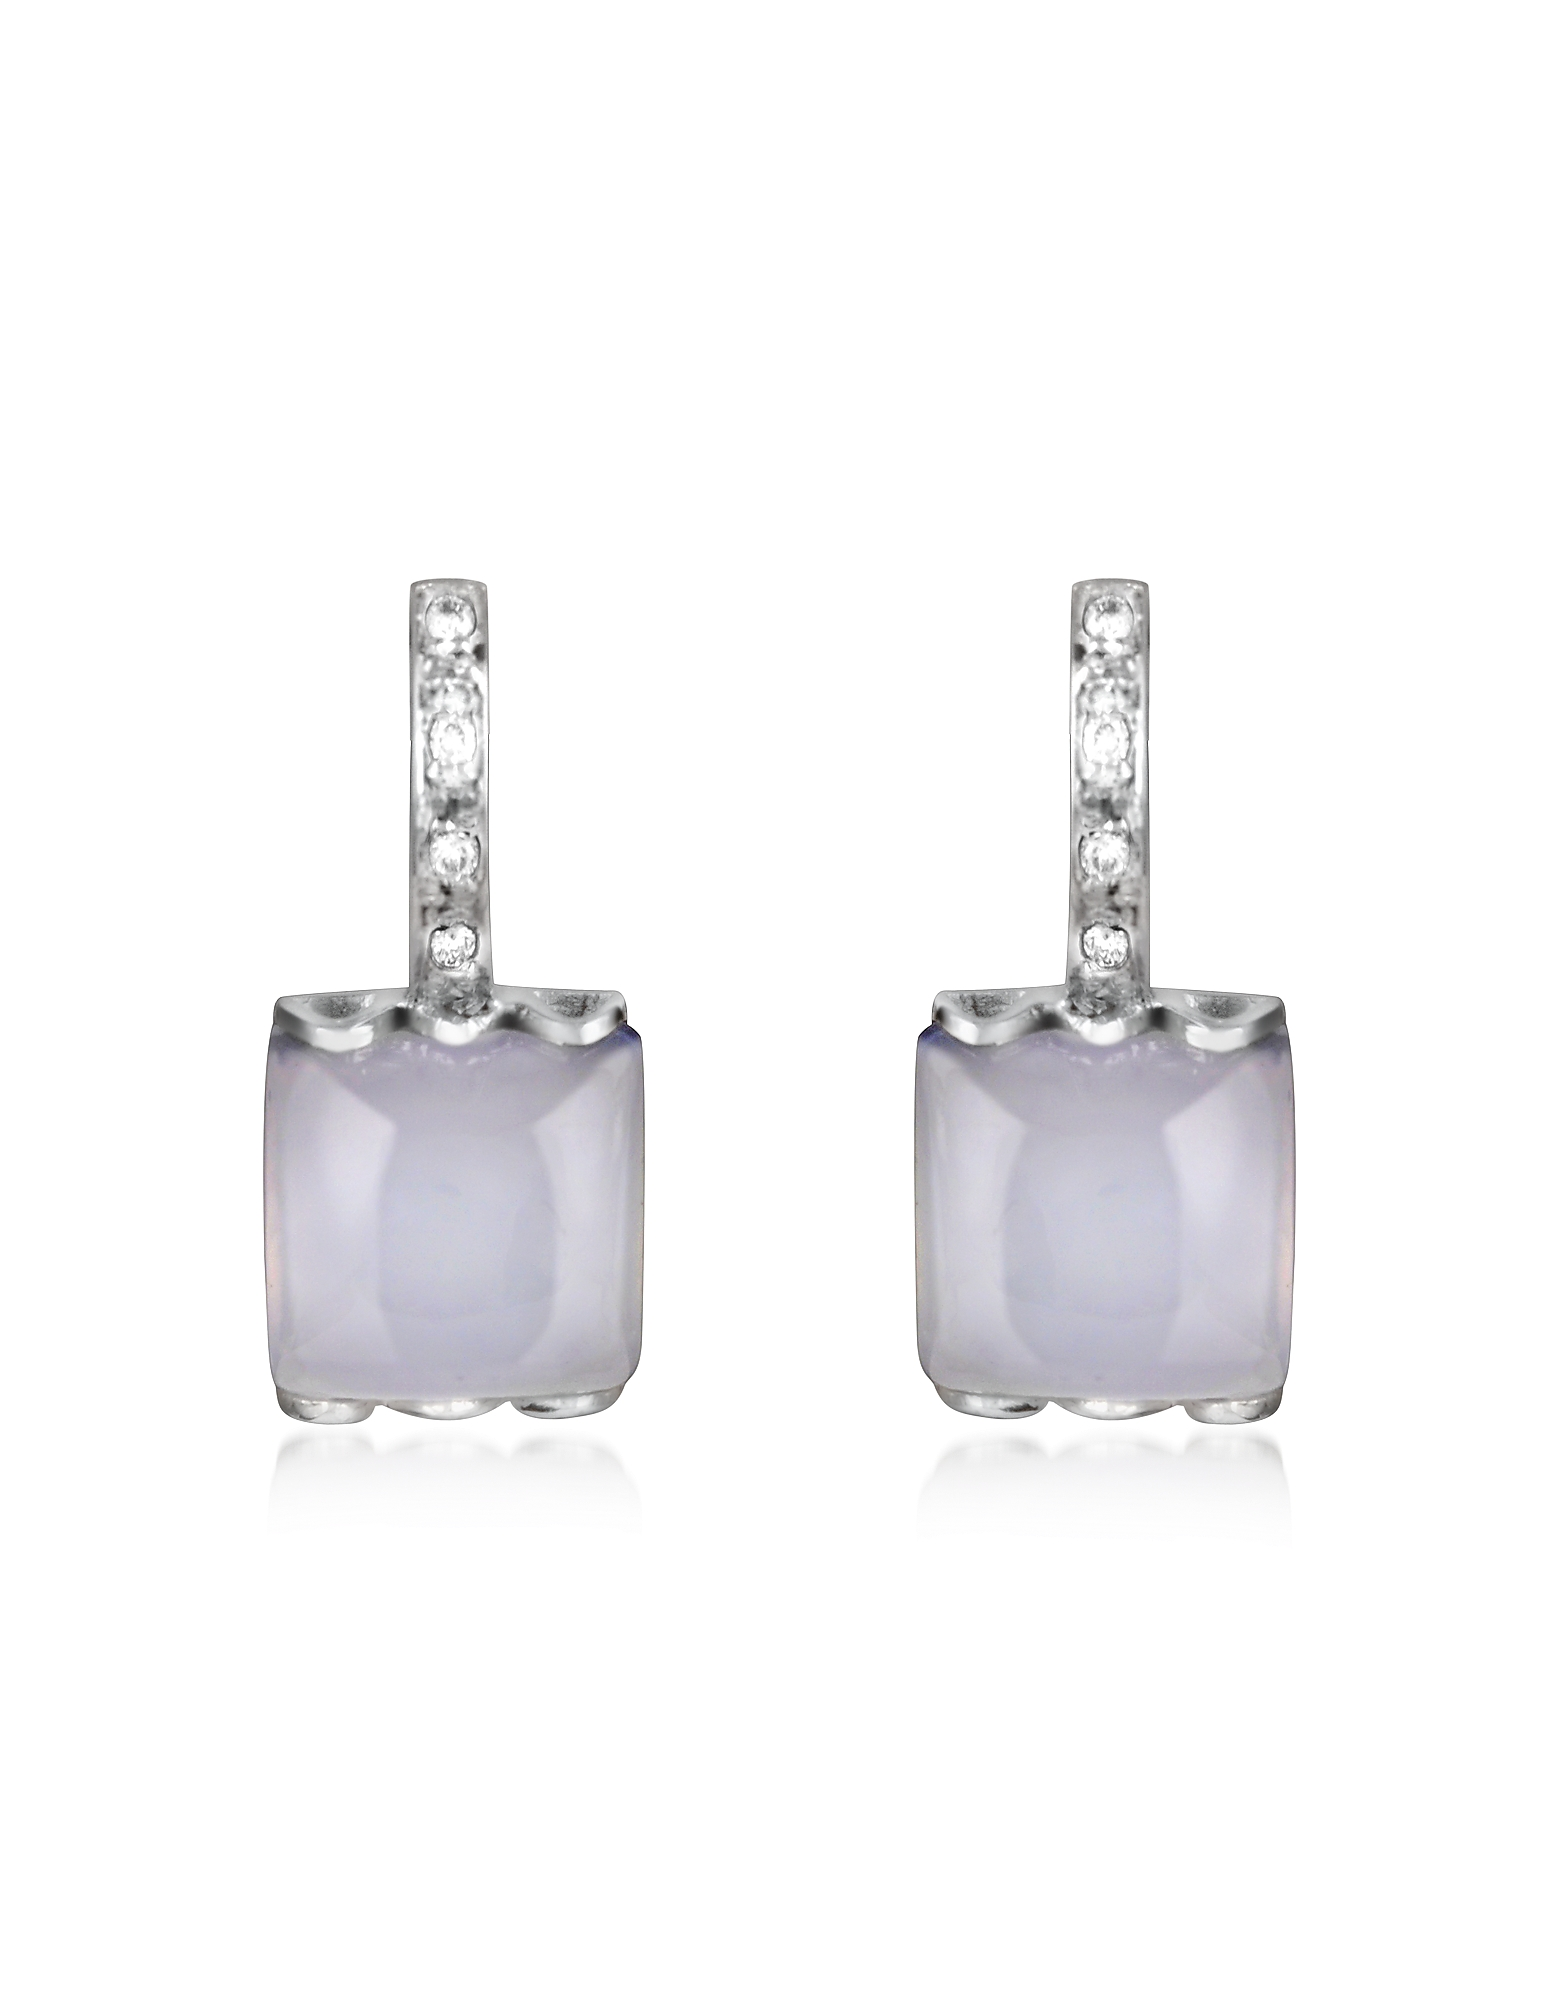 Mia & Beverly Earrings, Chalcedony and Diamond 18K White Gold Earrings